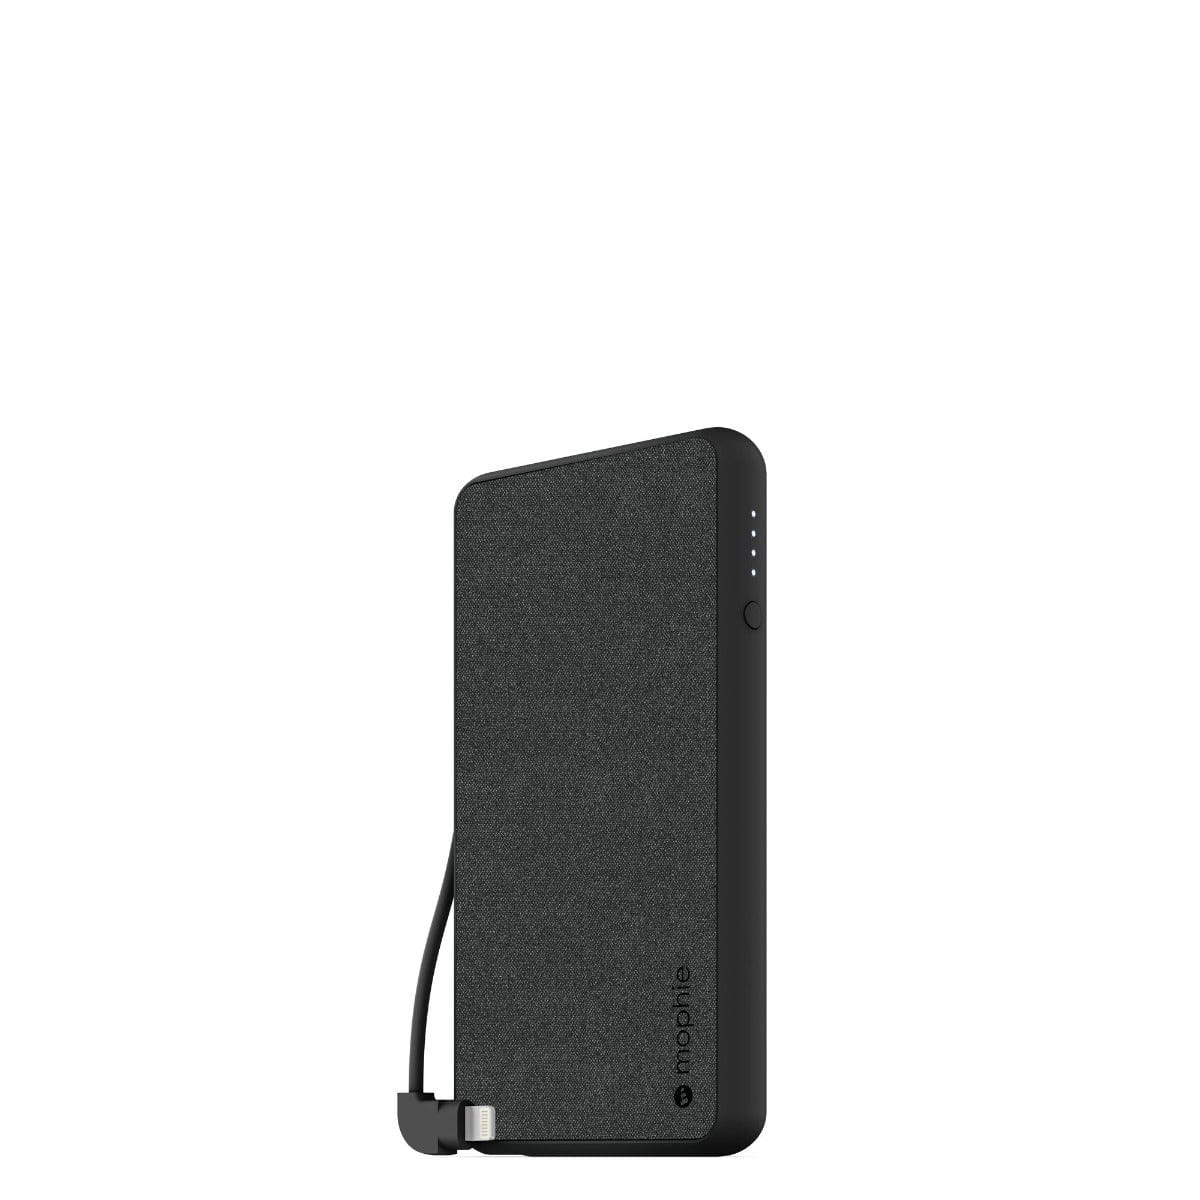 Mophie Powerstation Plus with Lightning Connector (Black) $17.98 + Free Shipping